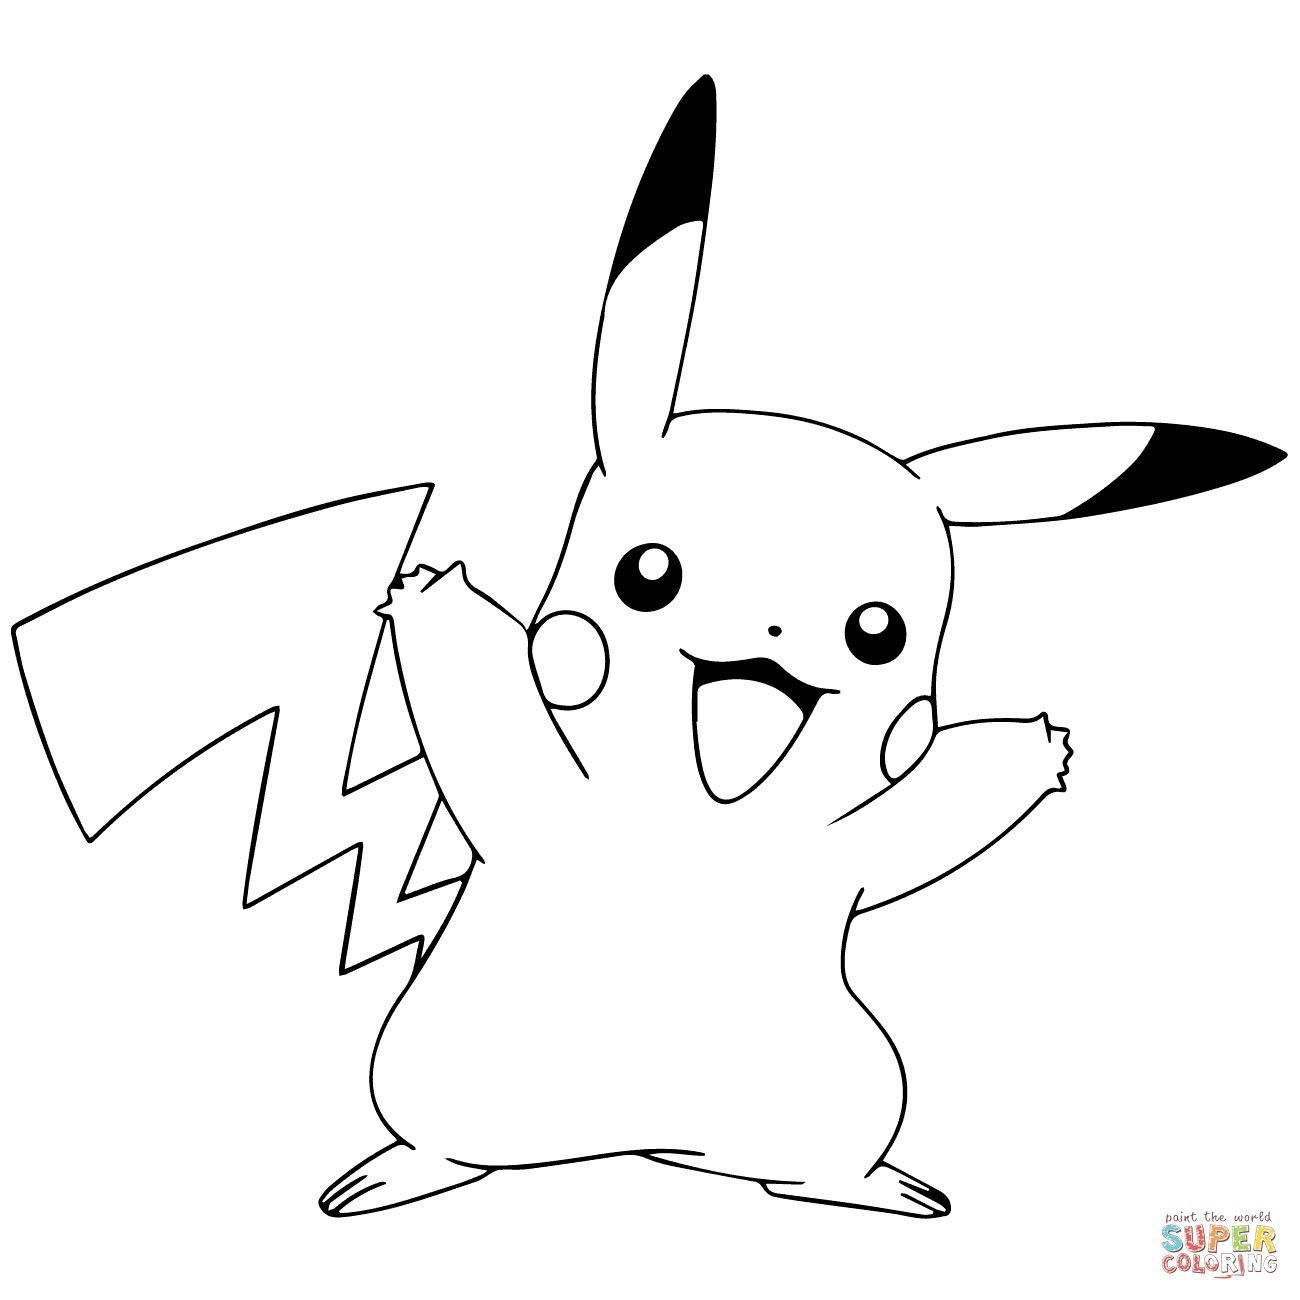 Pikachu Pokemon Go Coloring Pages From The Thousand Photos Online With Regards To Pikachu Pokem Pikachu Coloring Page Pokemon Coloring Pages Pokemon Coloring